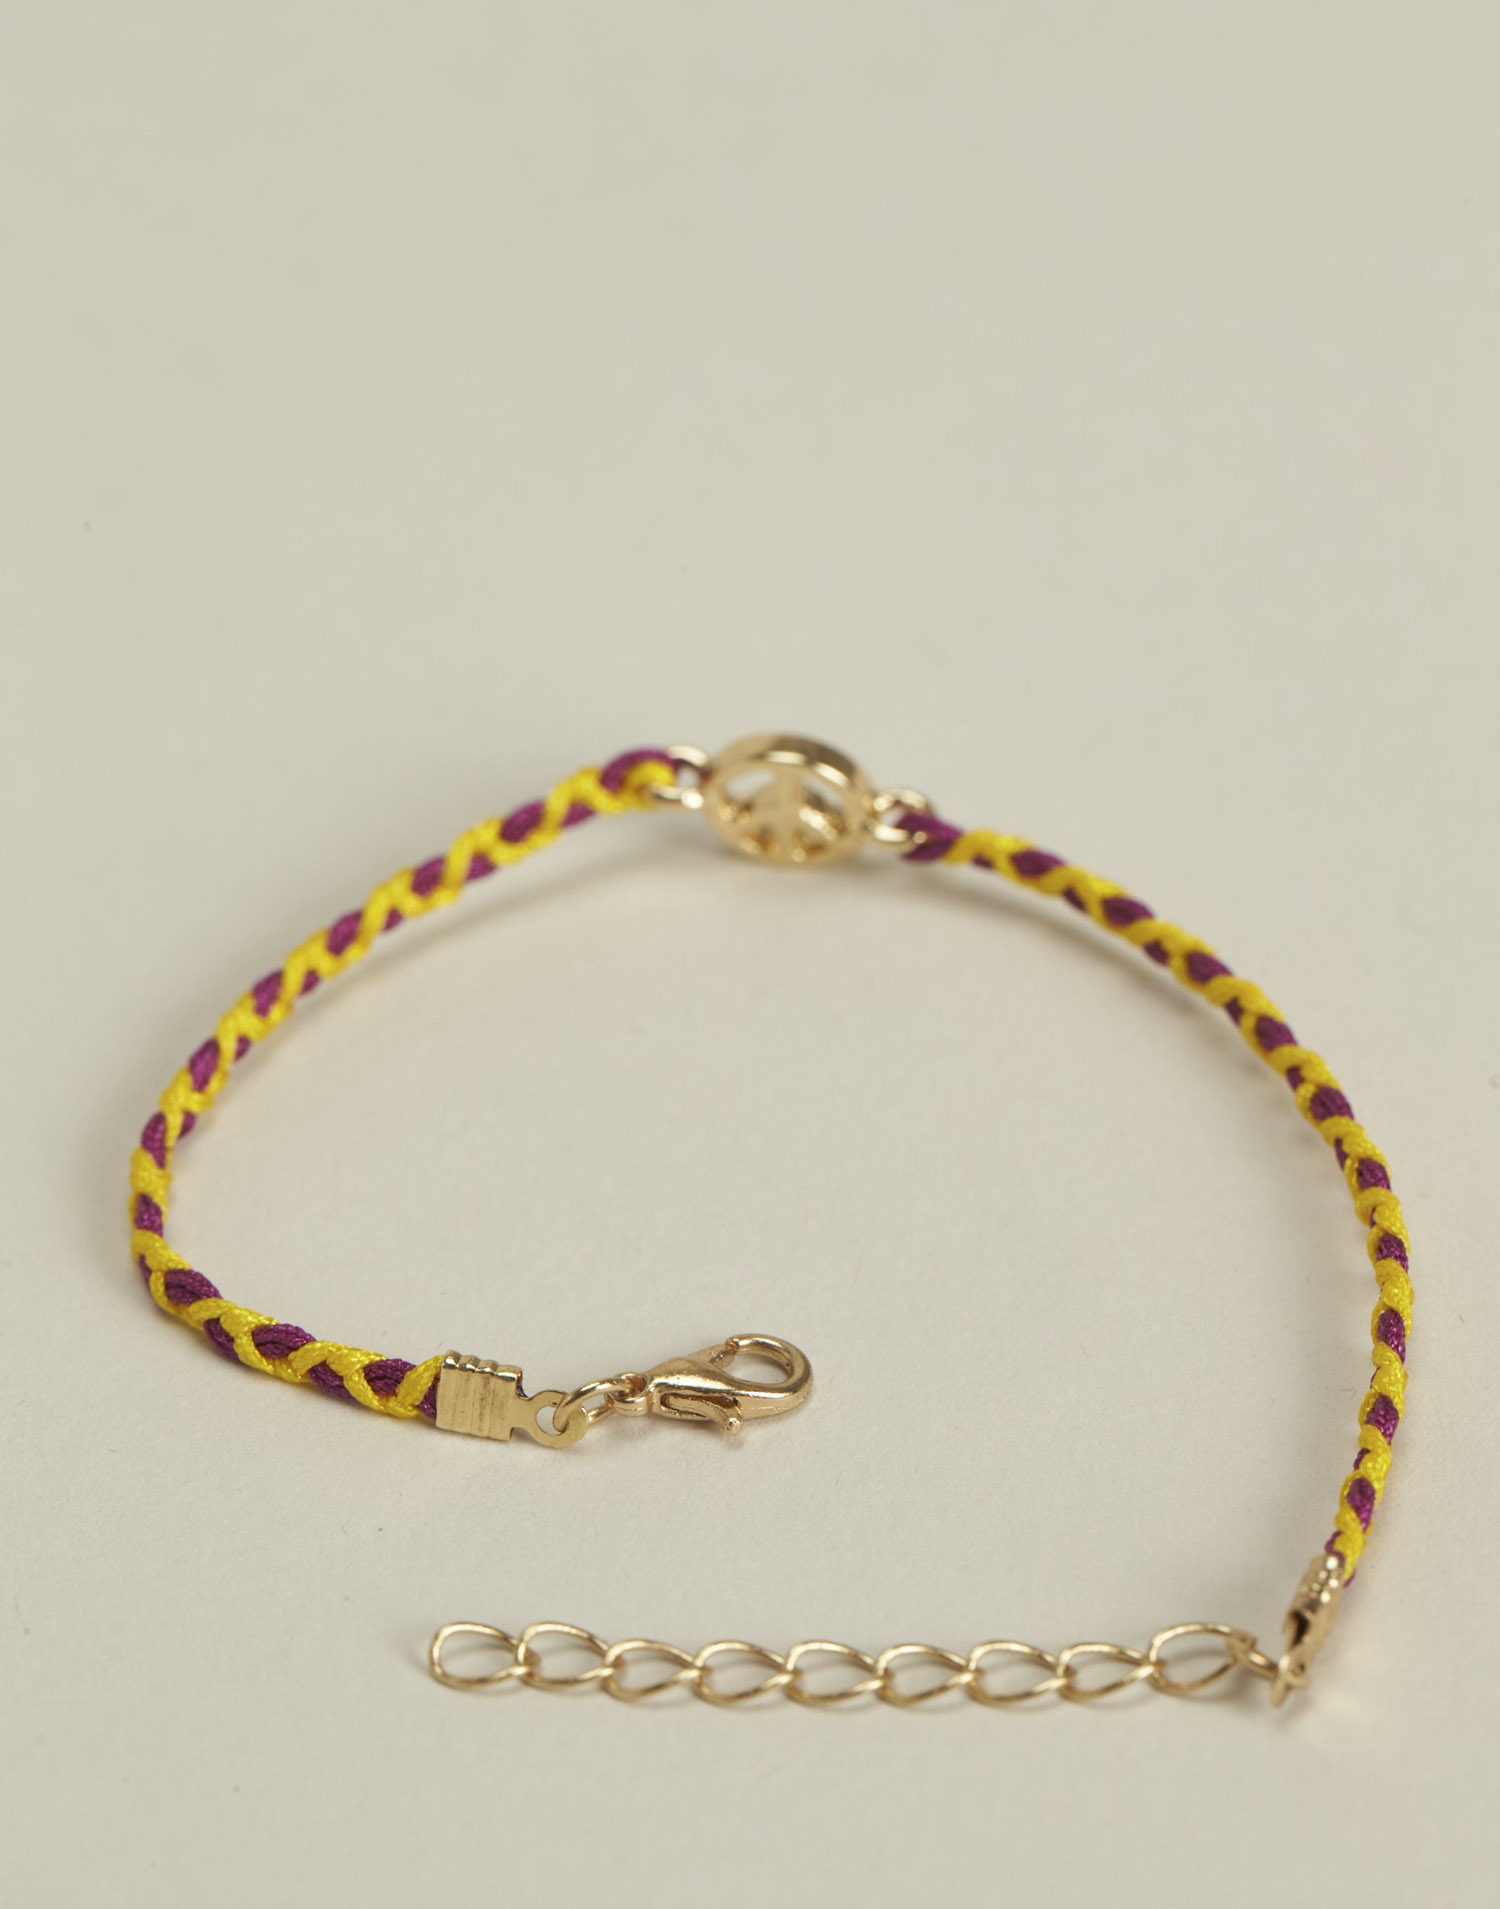 Braided thread bracelet